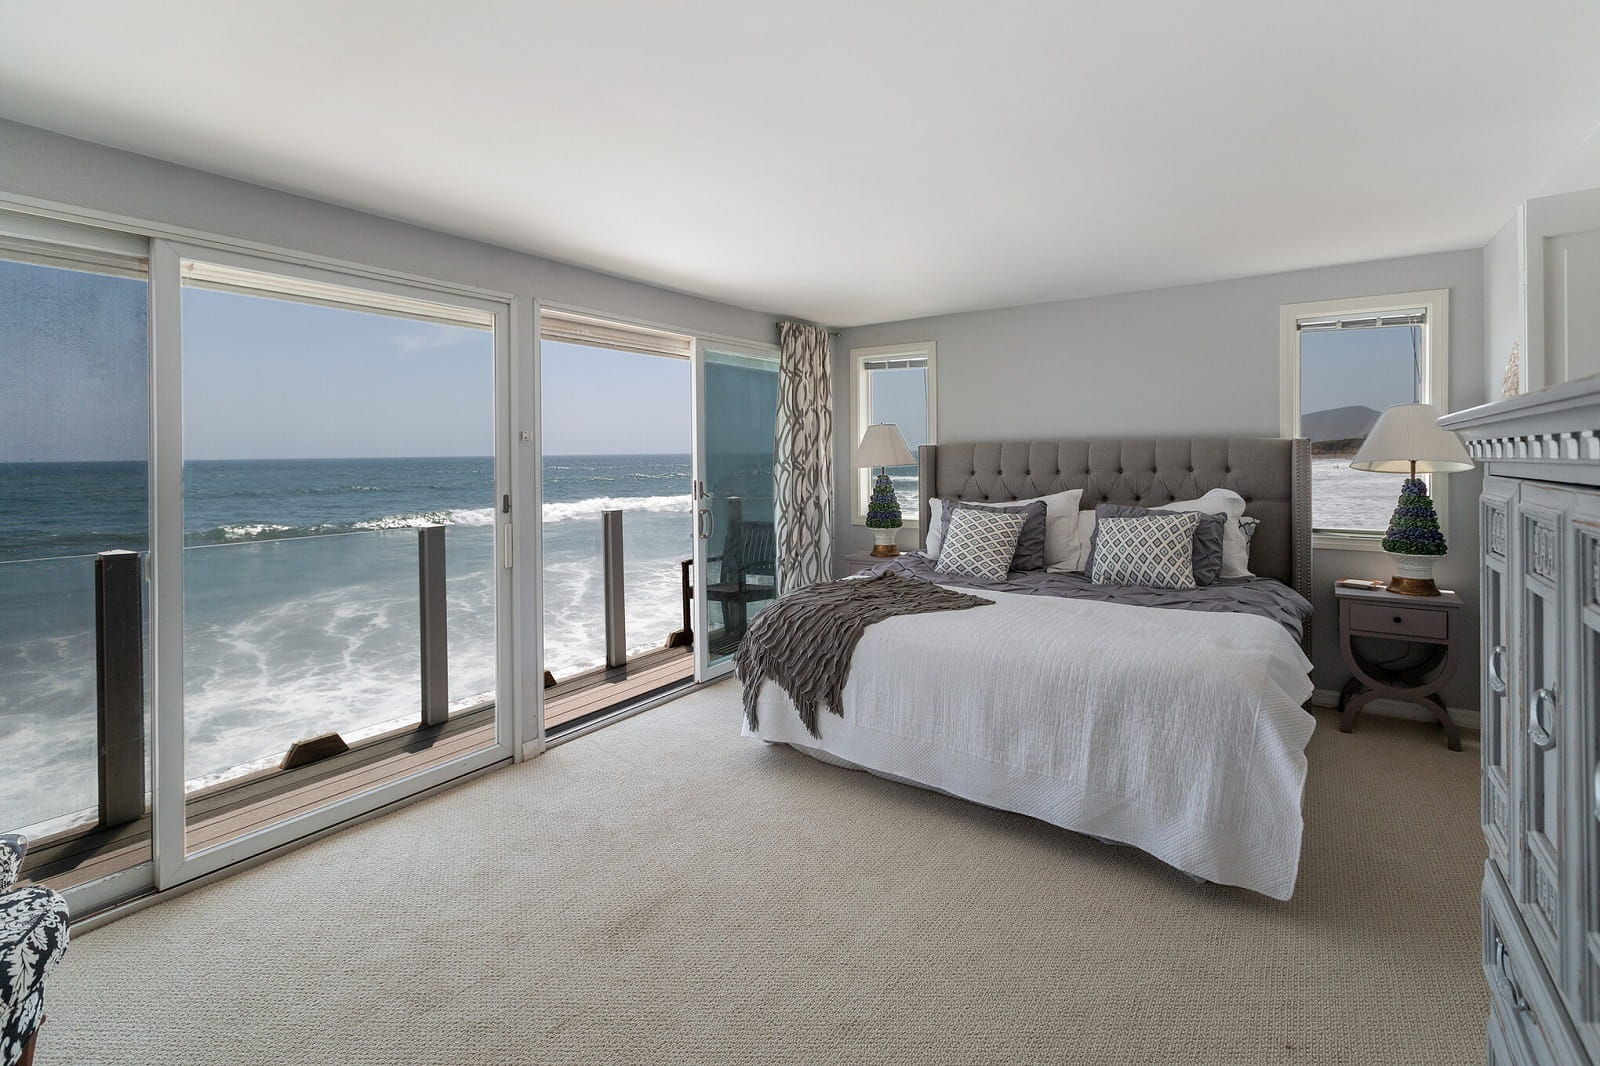 Real Estate Photography in Malibu - CA - USA - Bedroom View